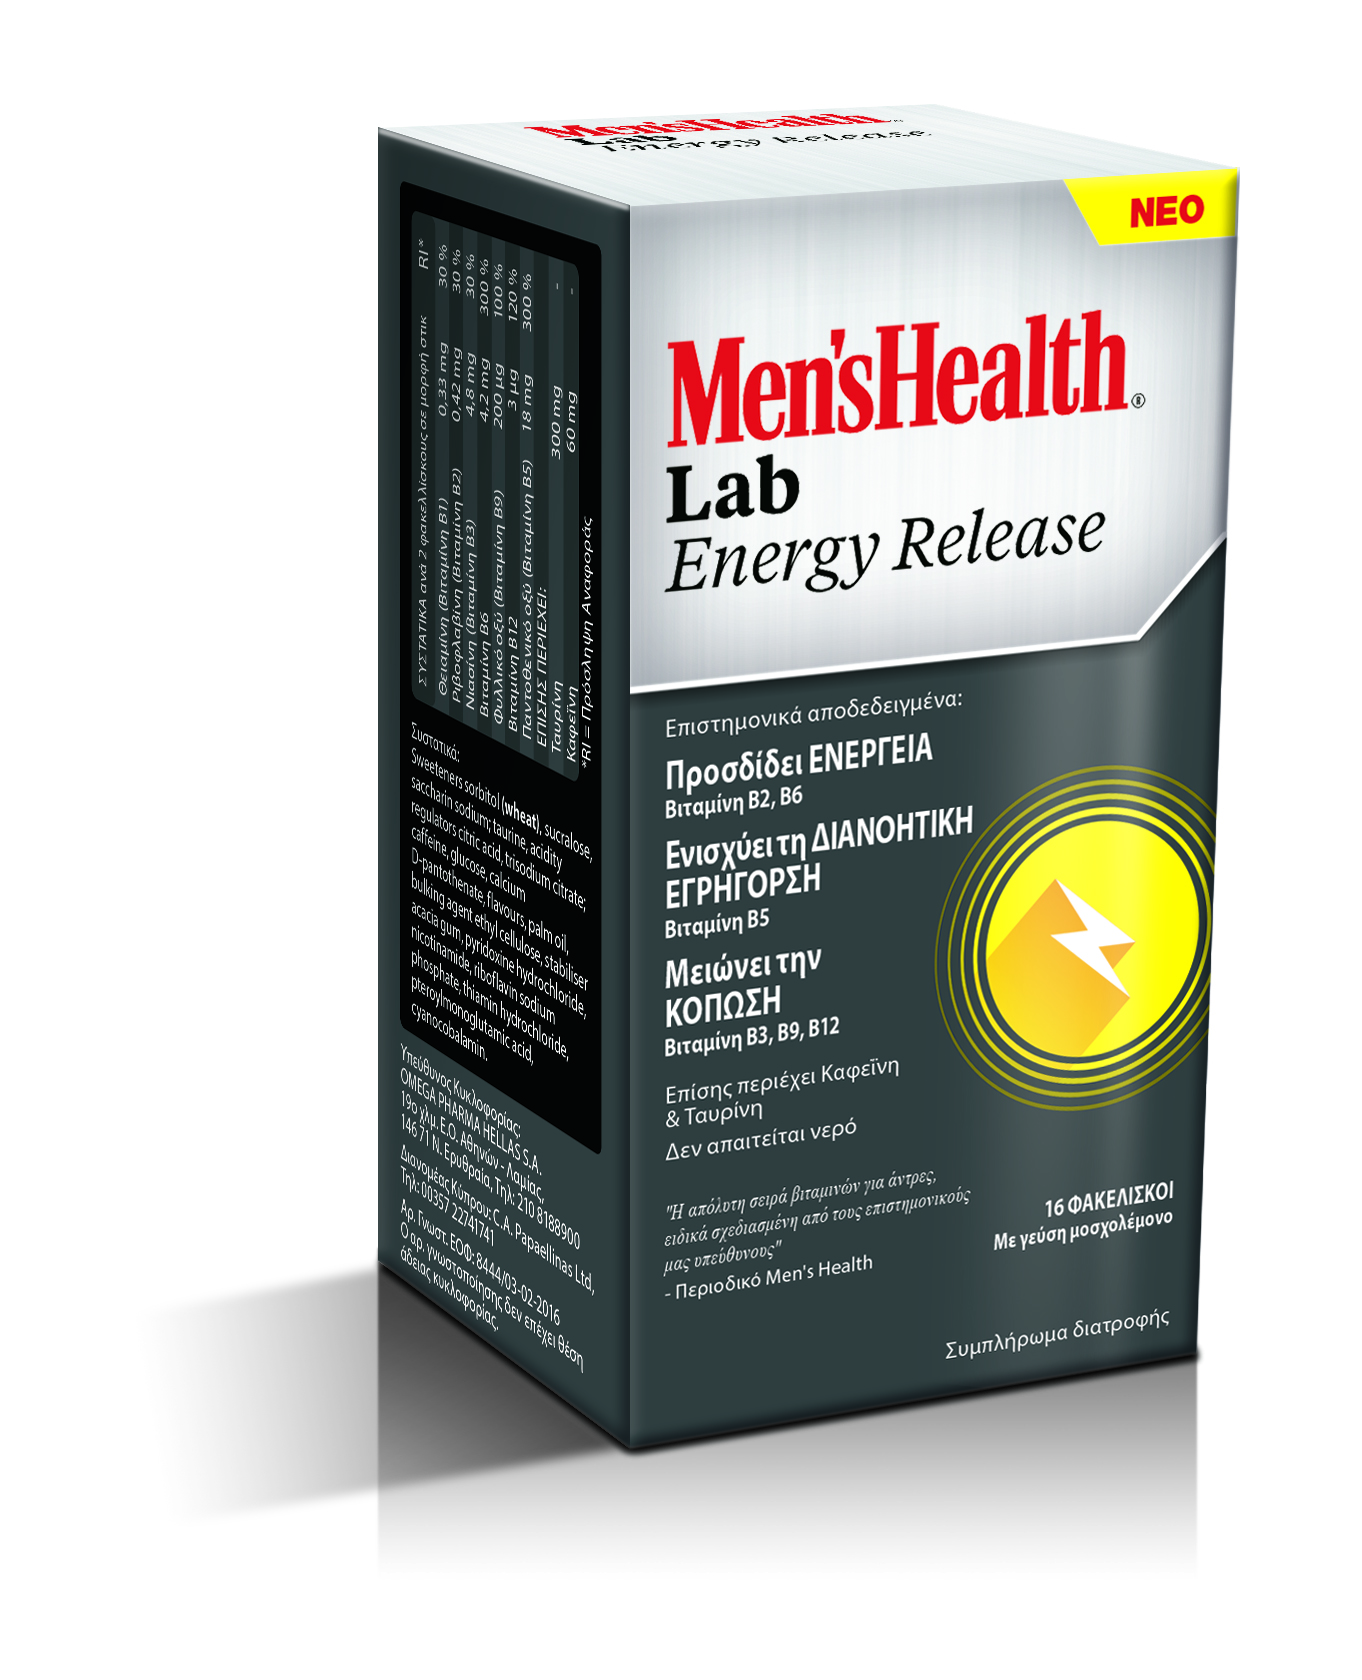 Men's Health Lab Energy Release 16 sachets